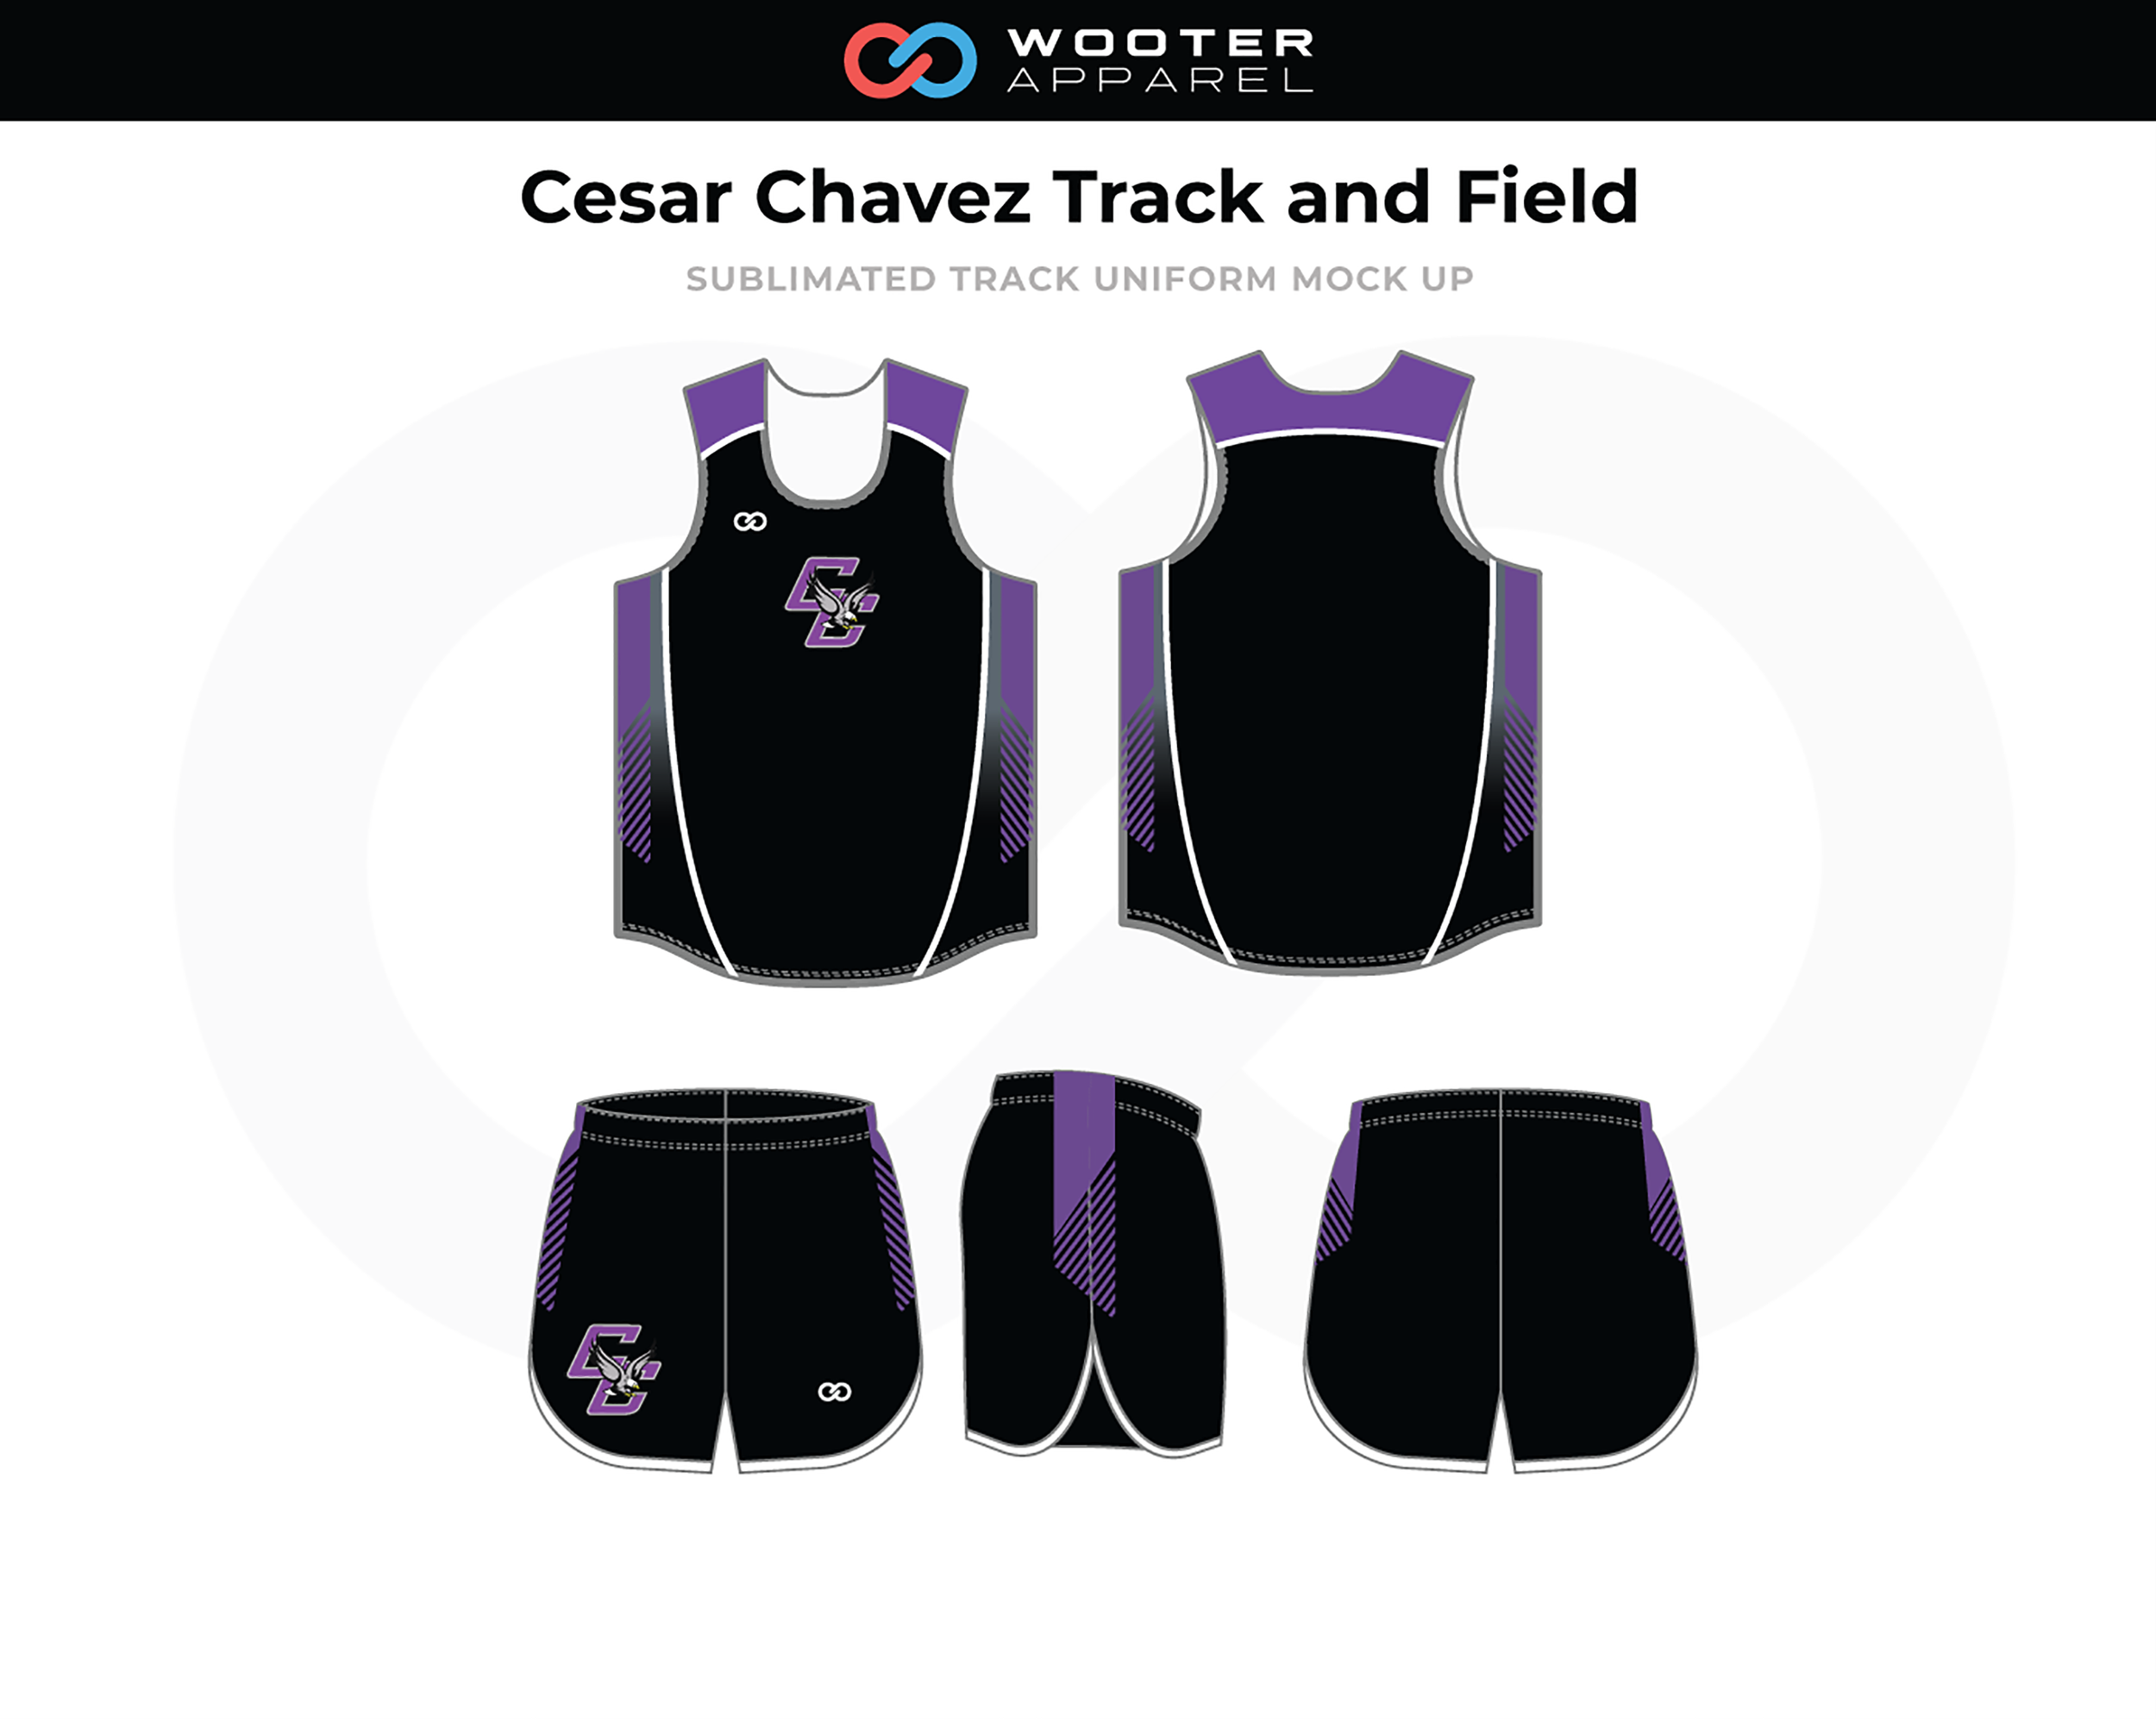 CESAR CHAVEZ TRACK AND FIELD Black Lavender White Track Uniforms, Jerseys, and Shorts